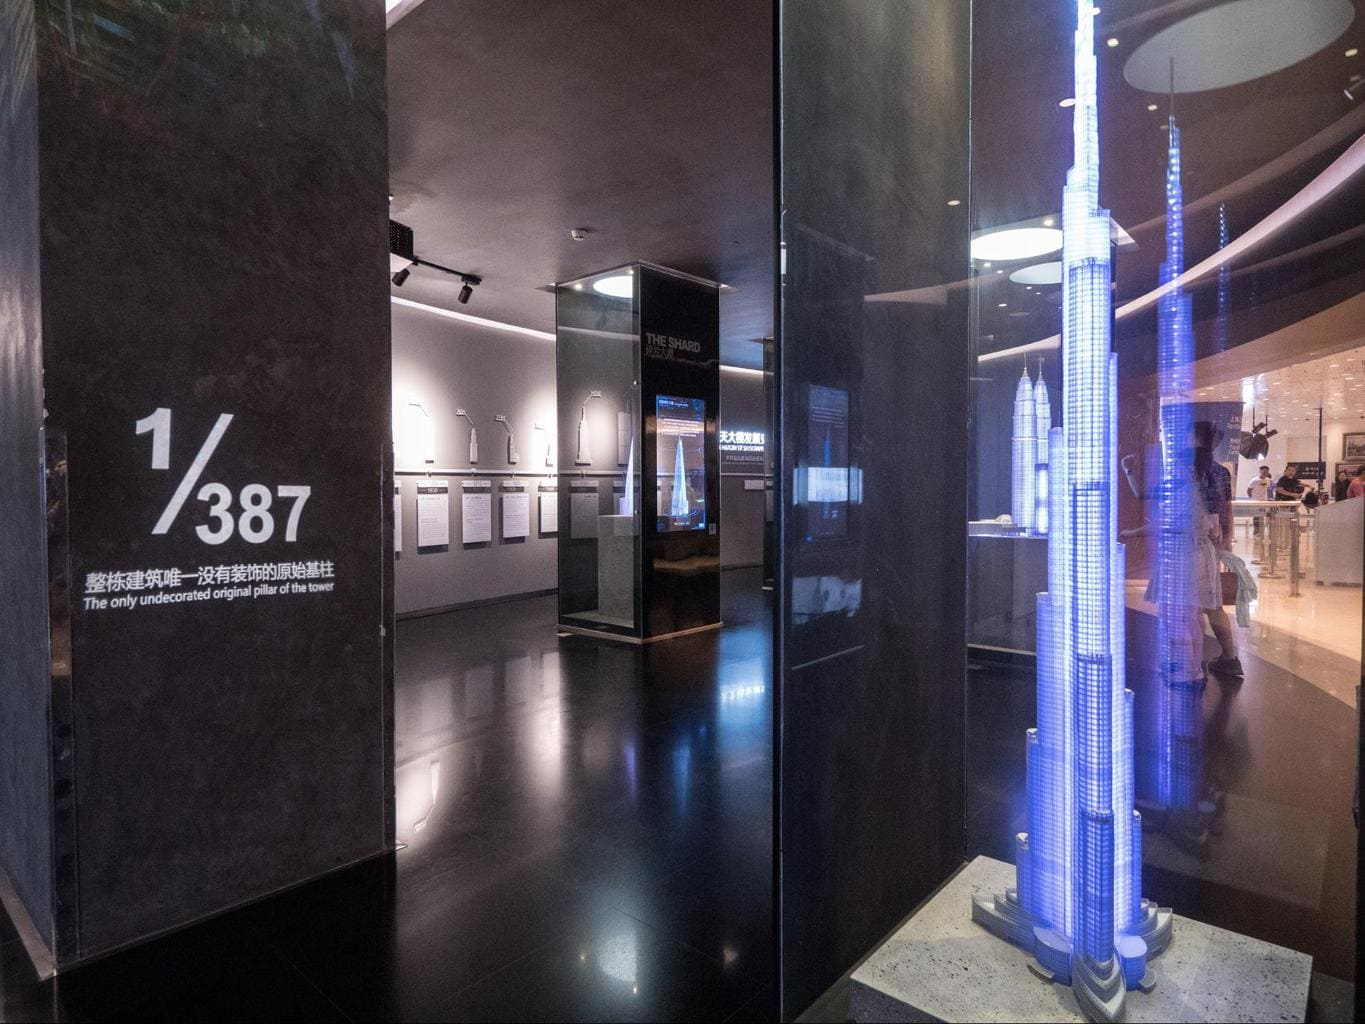 Exhibition area at the Shanghai Tower